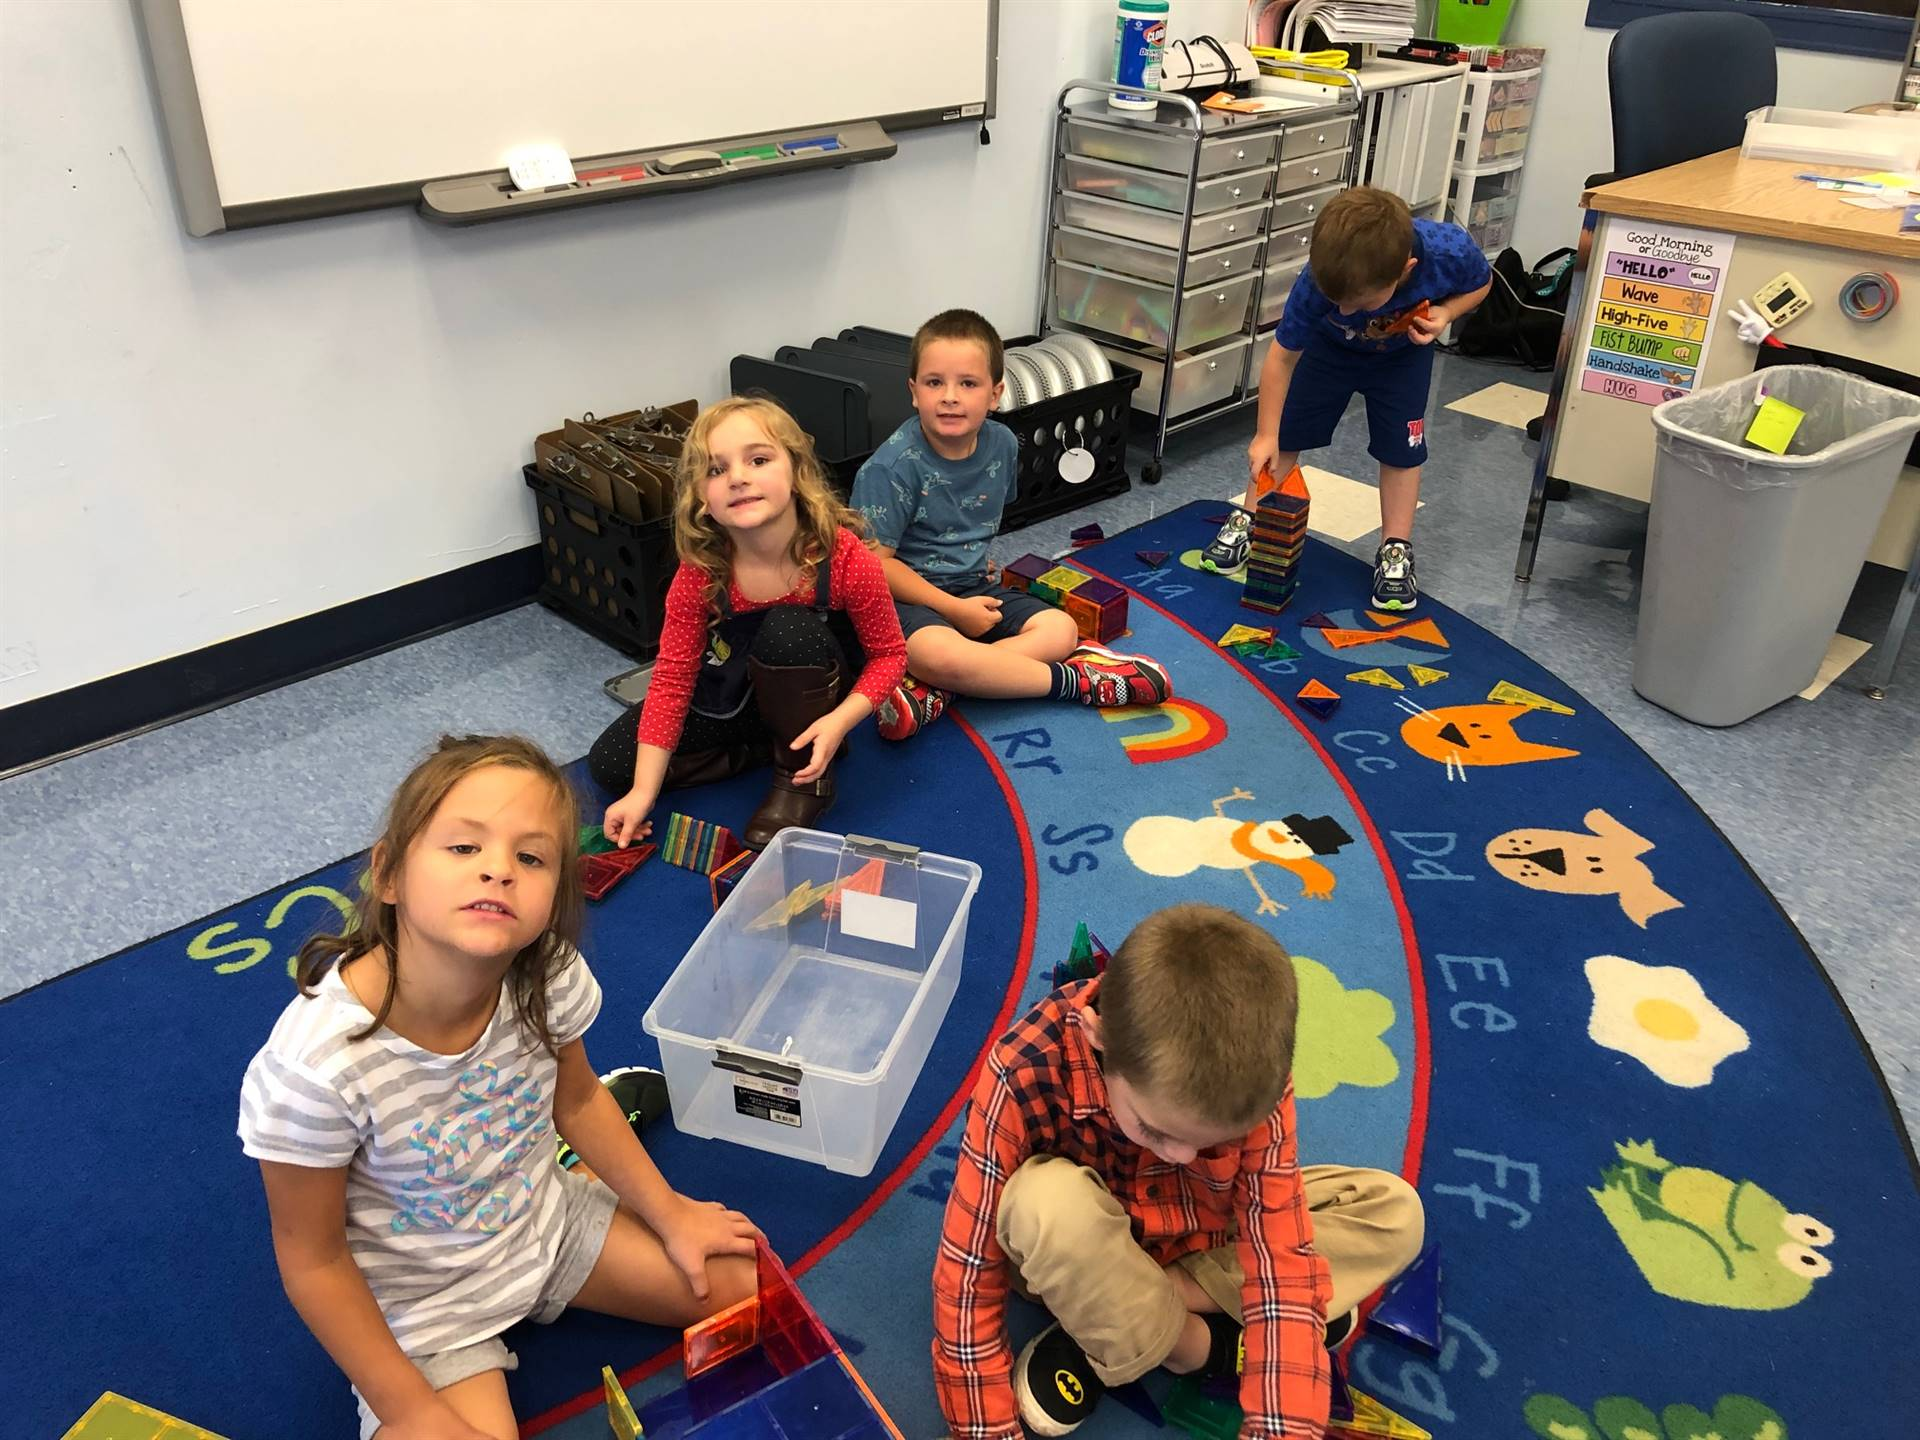 4 students play.